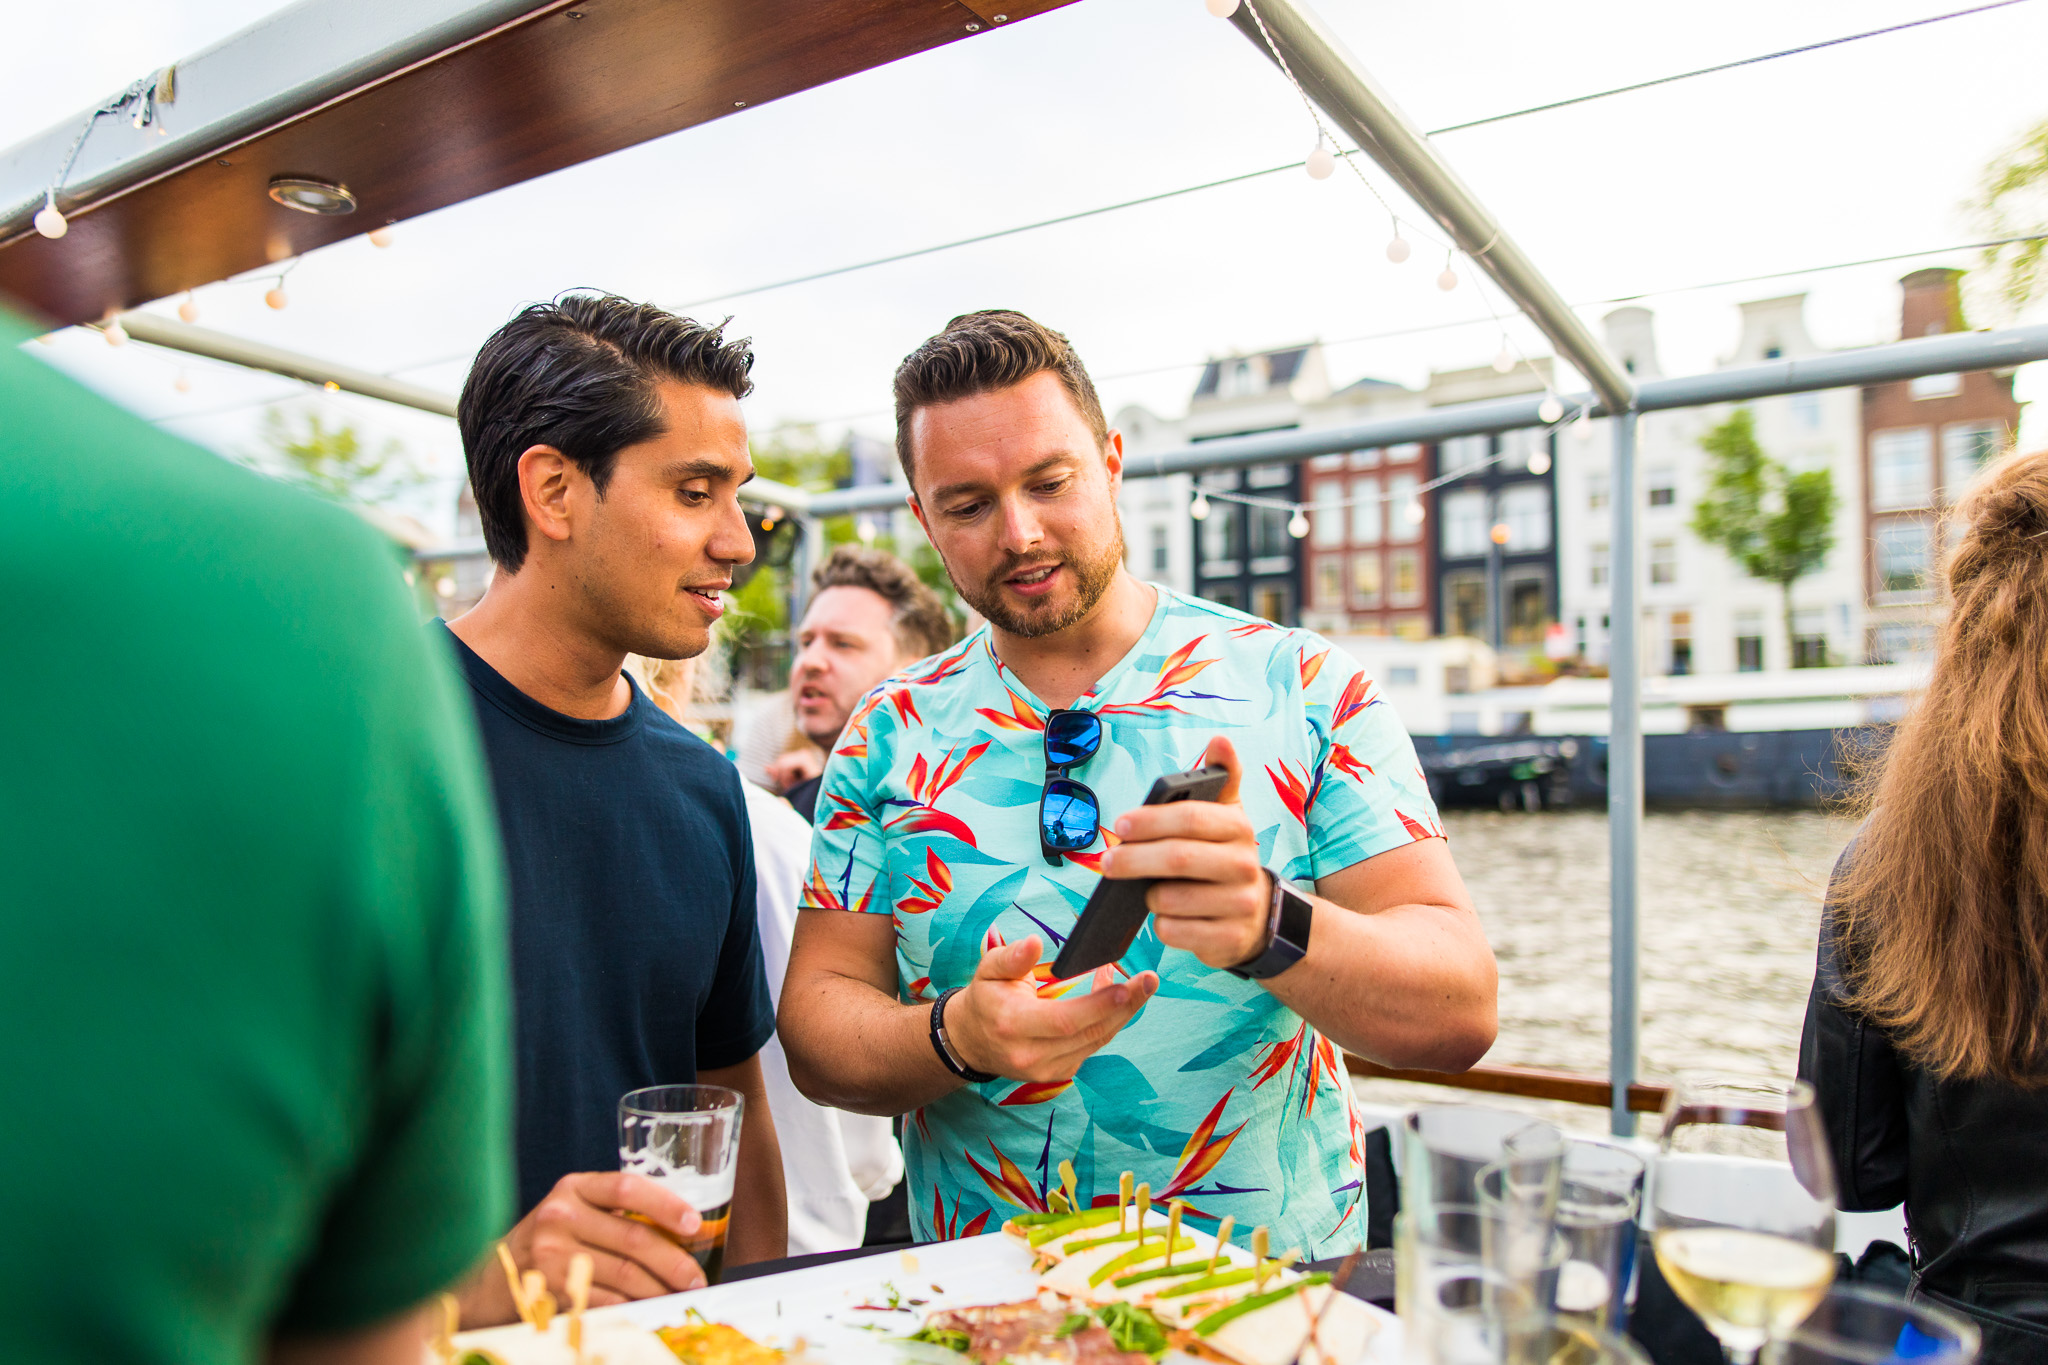 20190627_CreativeCruise-0128-3838.jpg